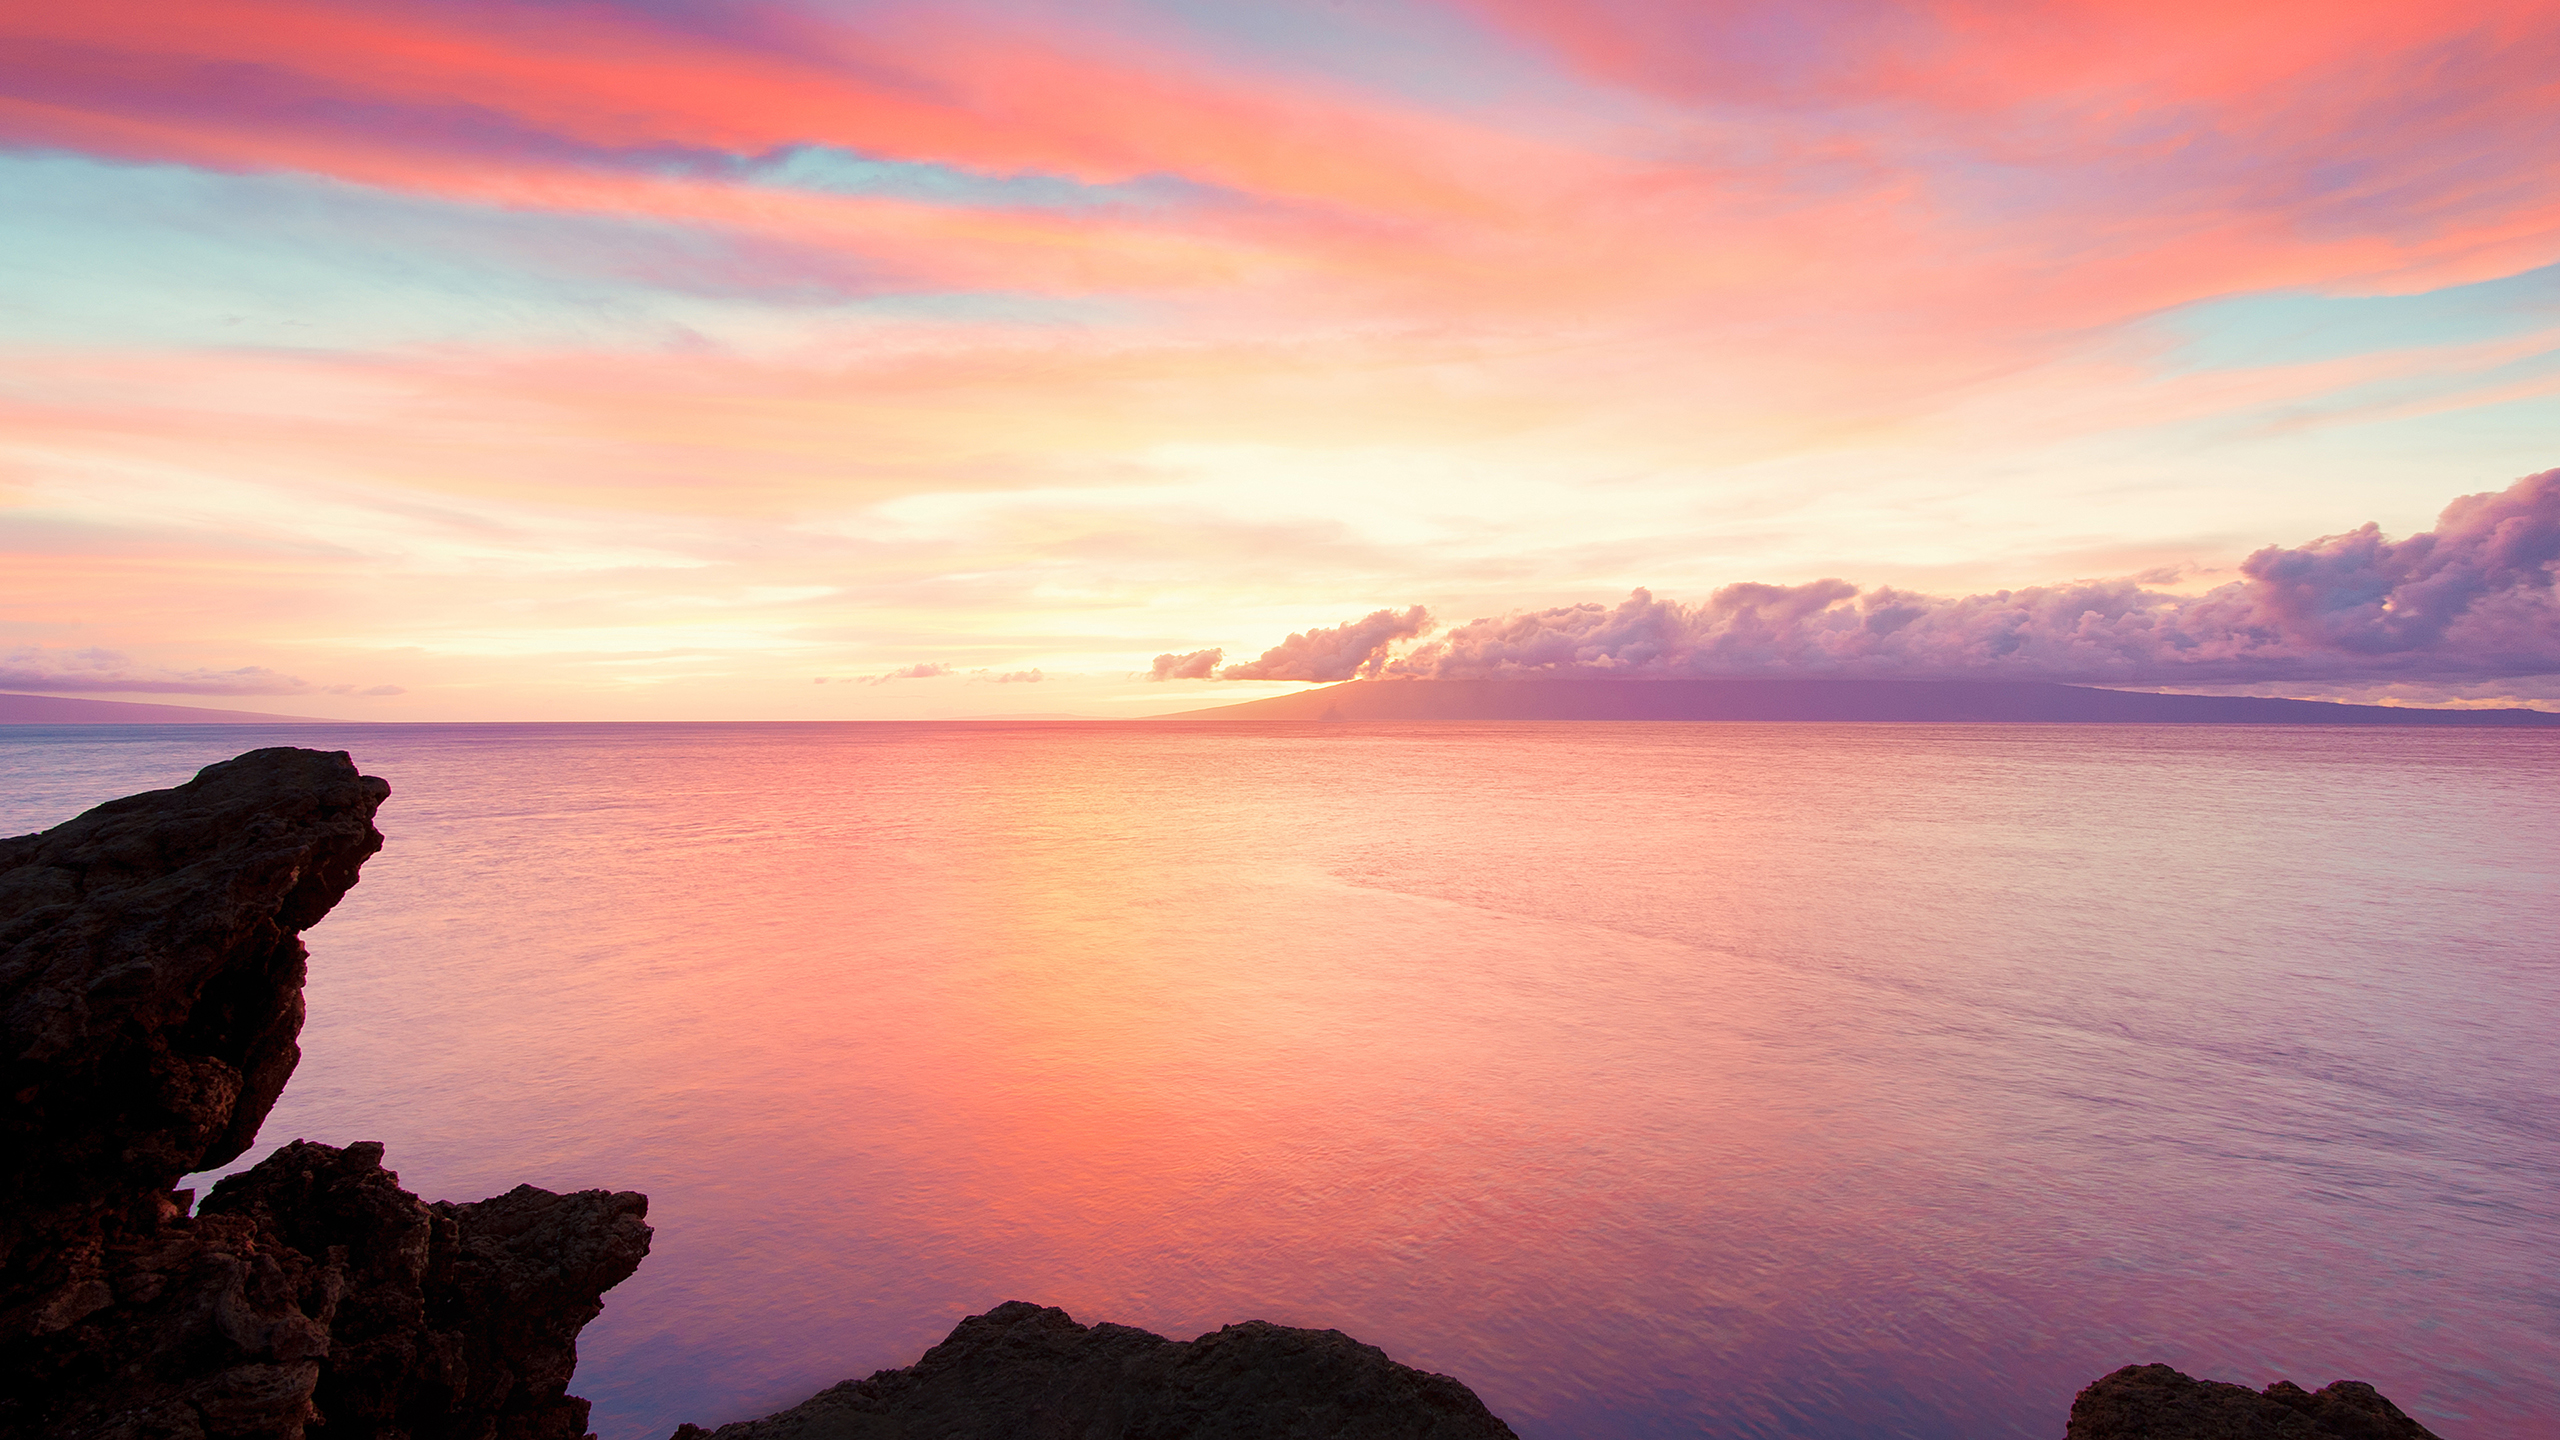 breathtakingly_stunning_view_hawaii_wallpaper_2560x1440